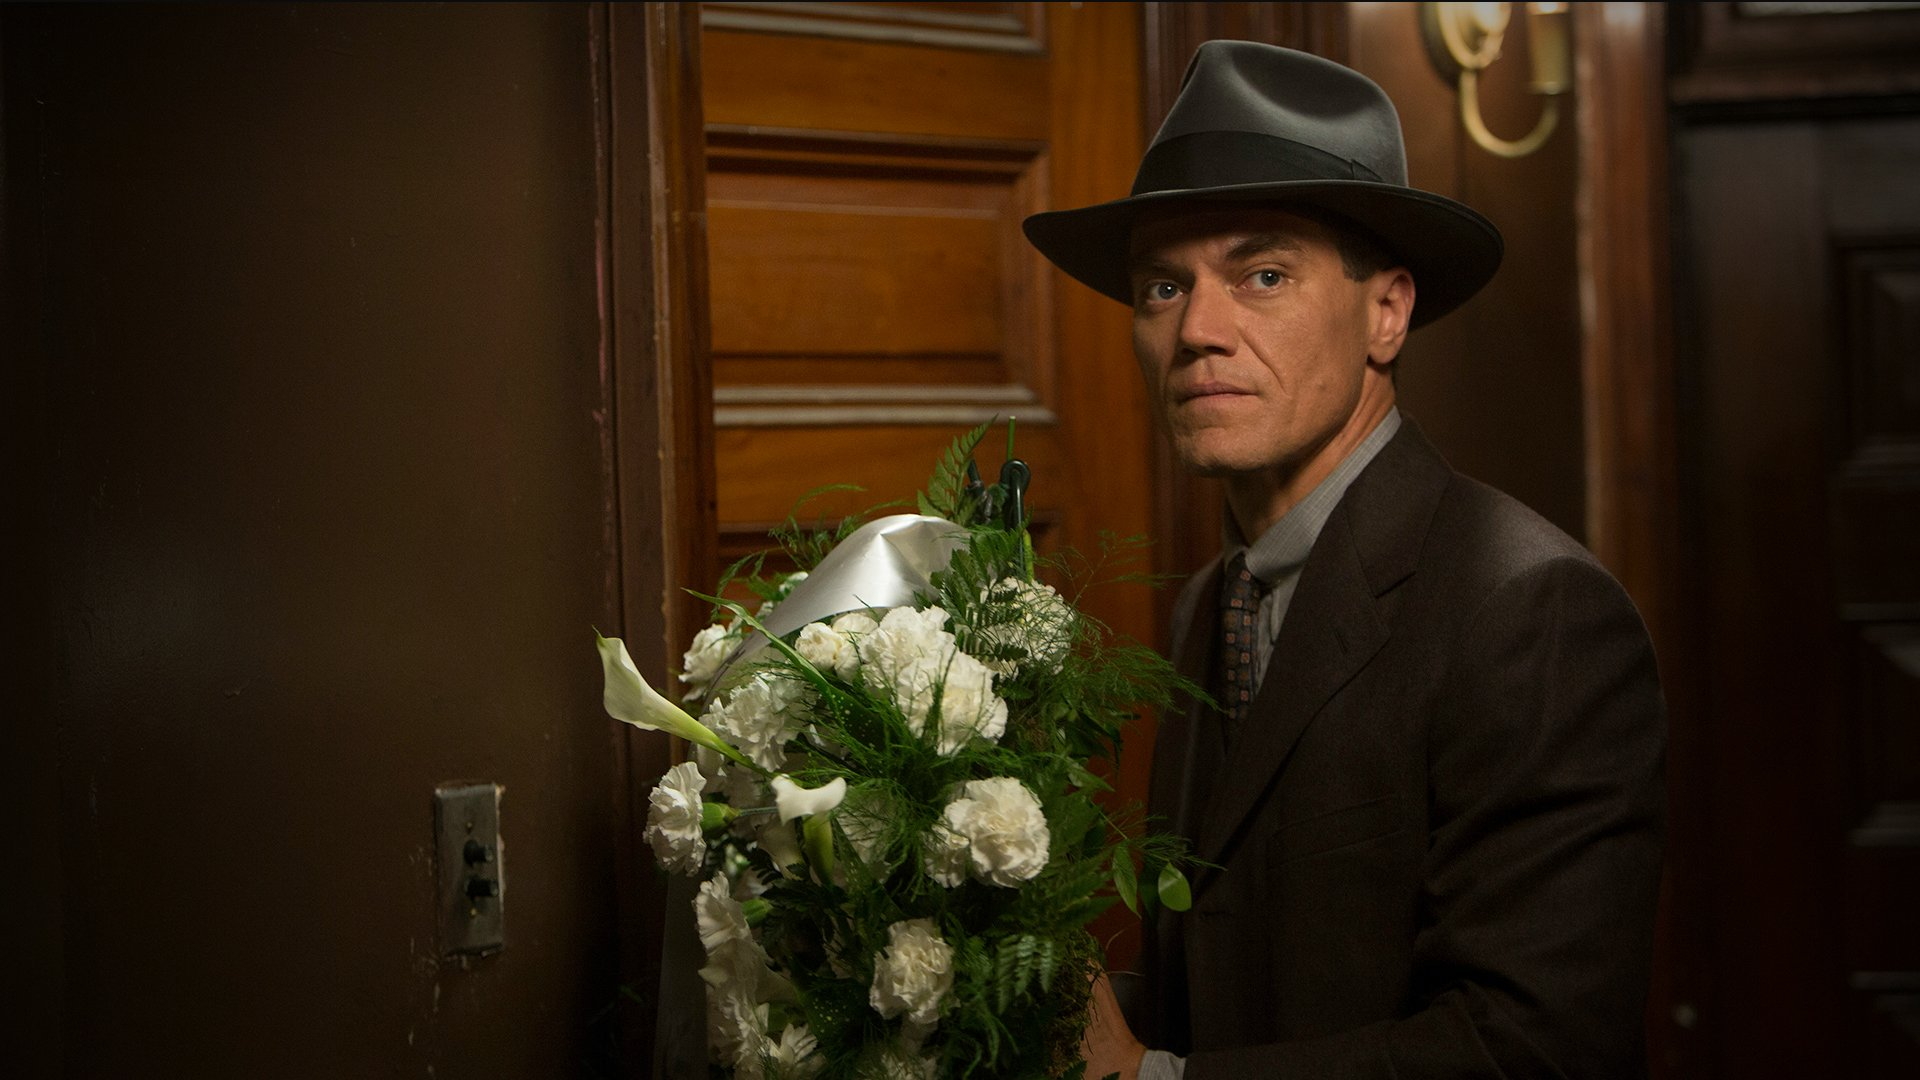 Boardwalk Empire - 04x09 - Marriage and Hunting